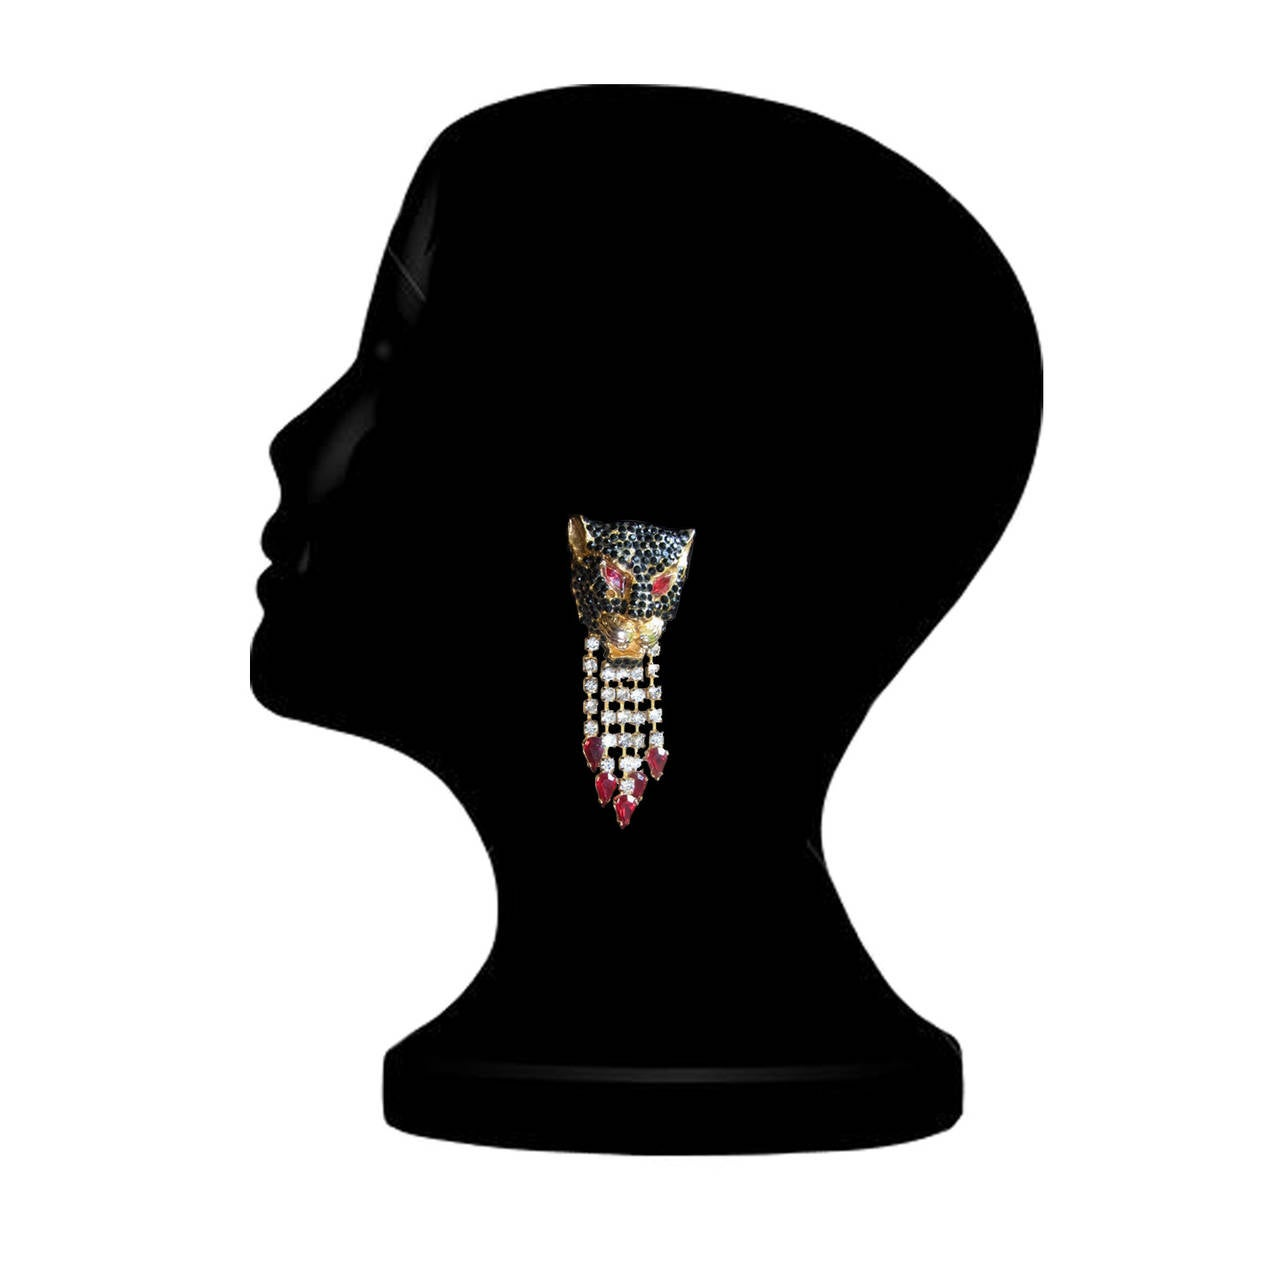 Gianni Versace a large black panther head clip from 1980's.